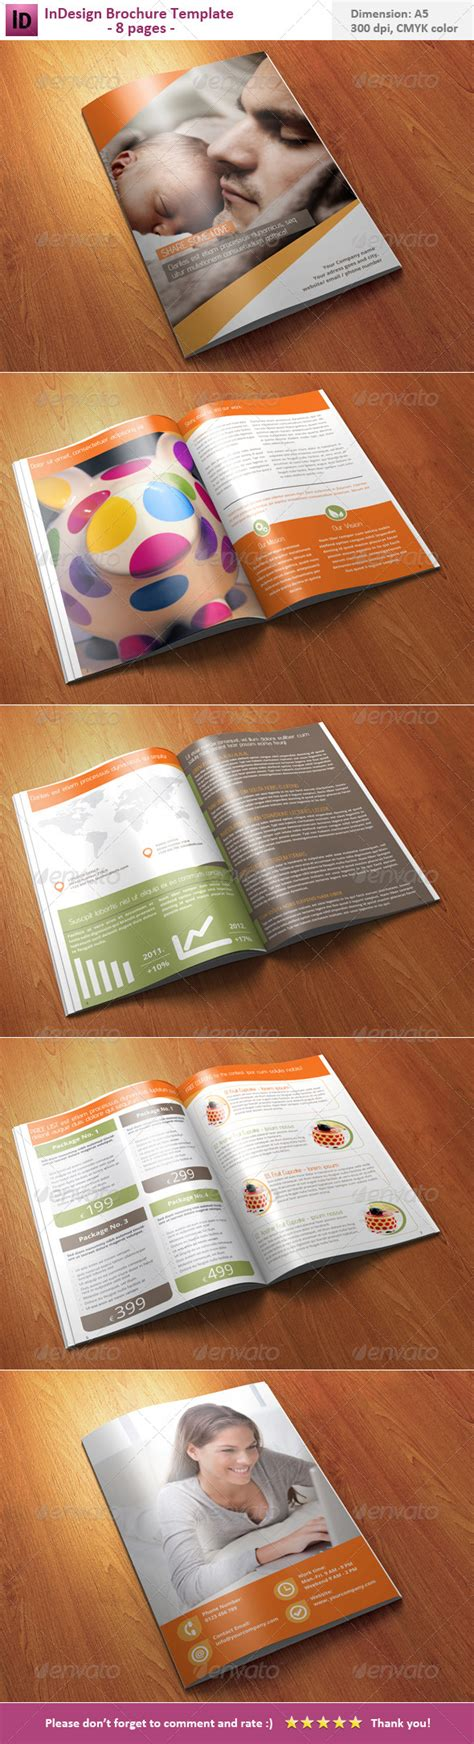 Indesign Brochure Template 8 Pages By Skatusic Graphicriver 8 Page Booklet Template Indesign